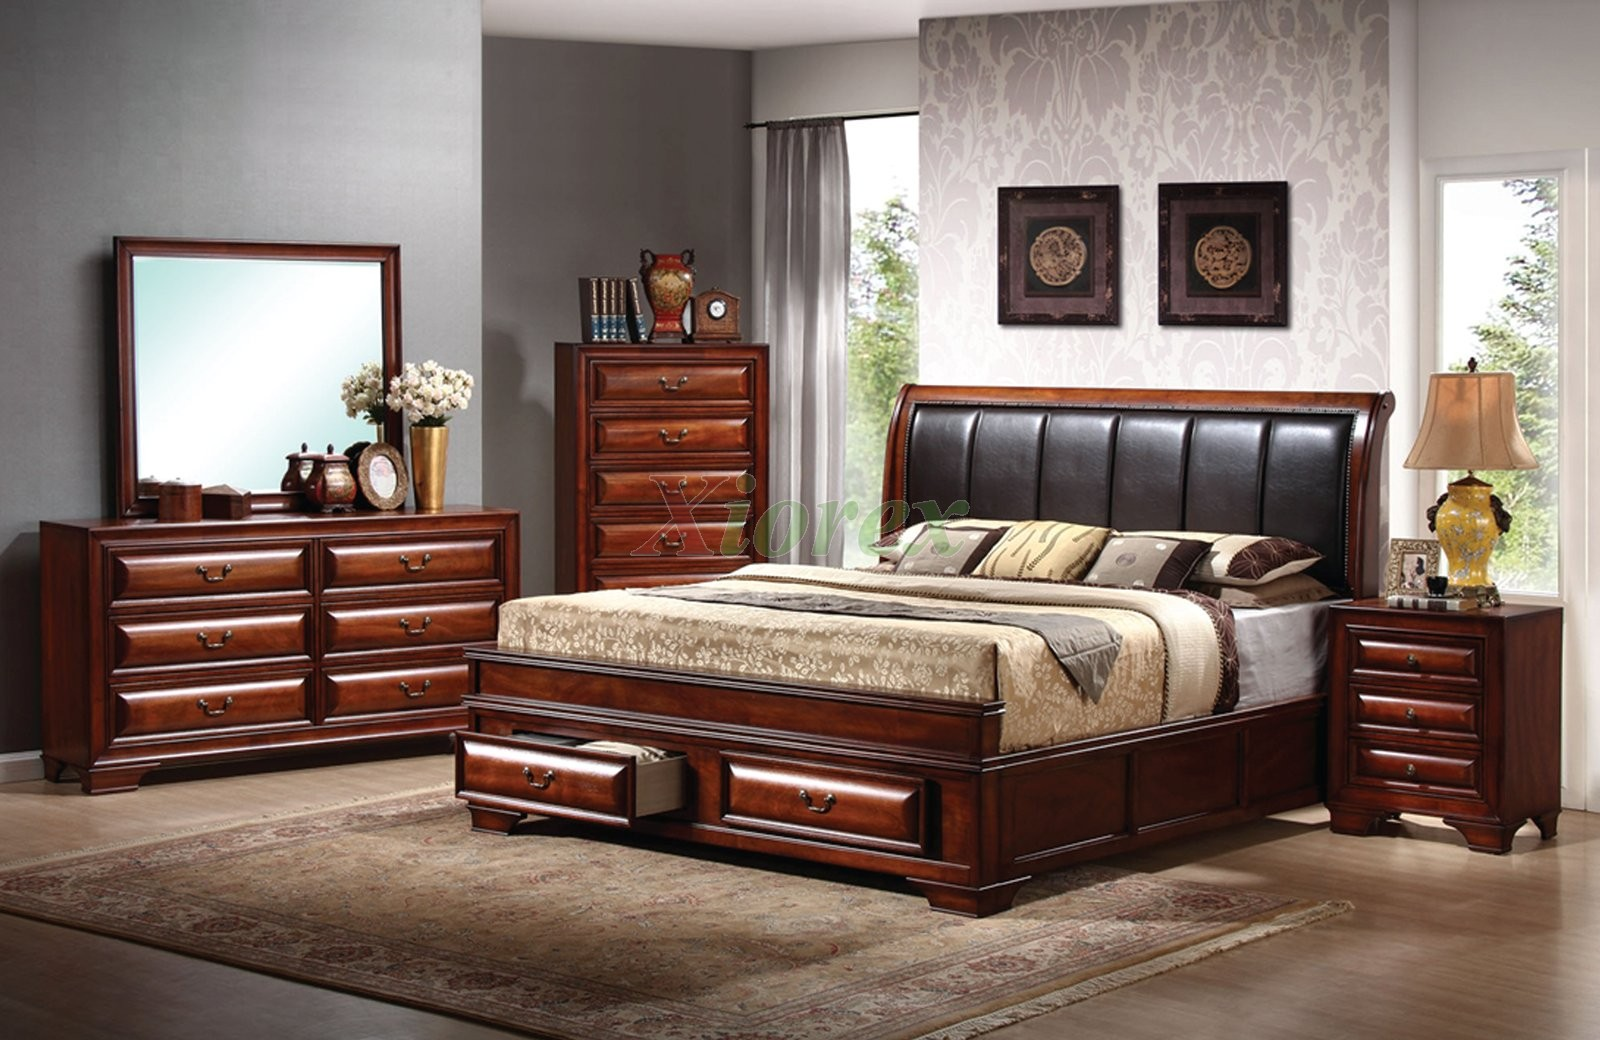 Platform bedroom furniture set with leather headboard beds Small leather couch for bedroom